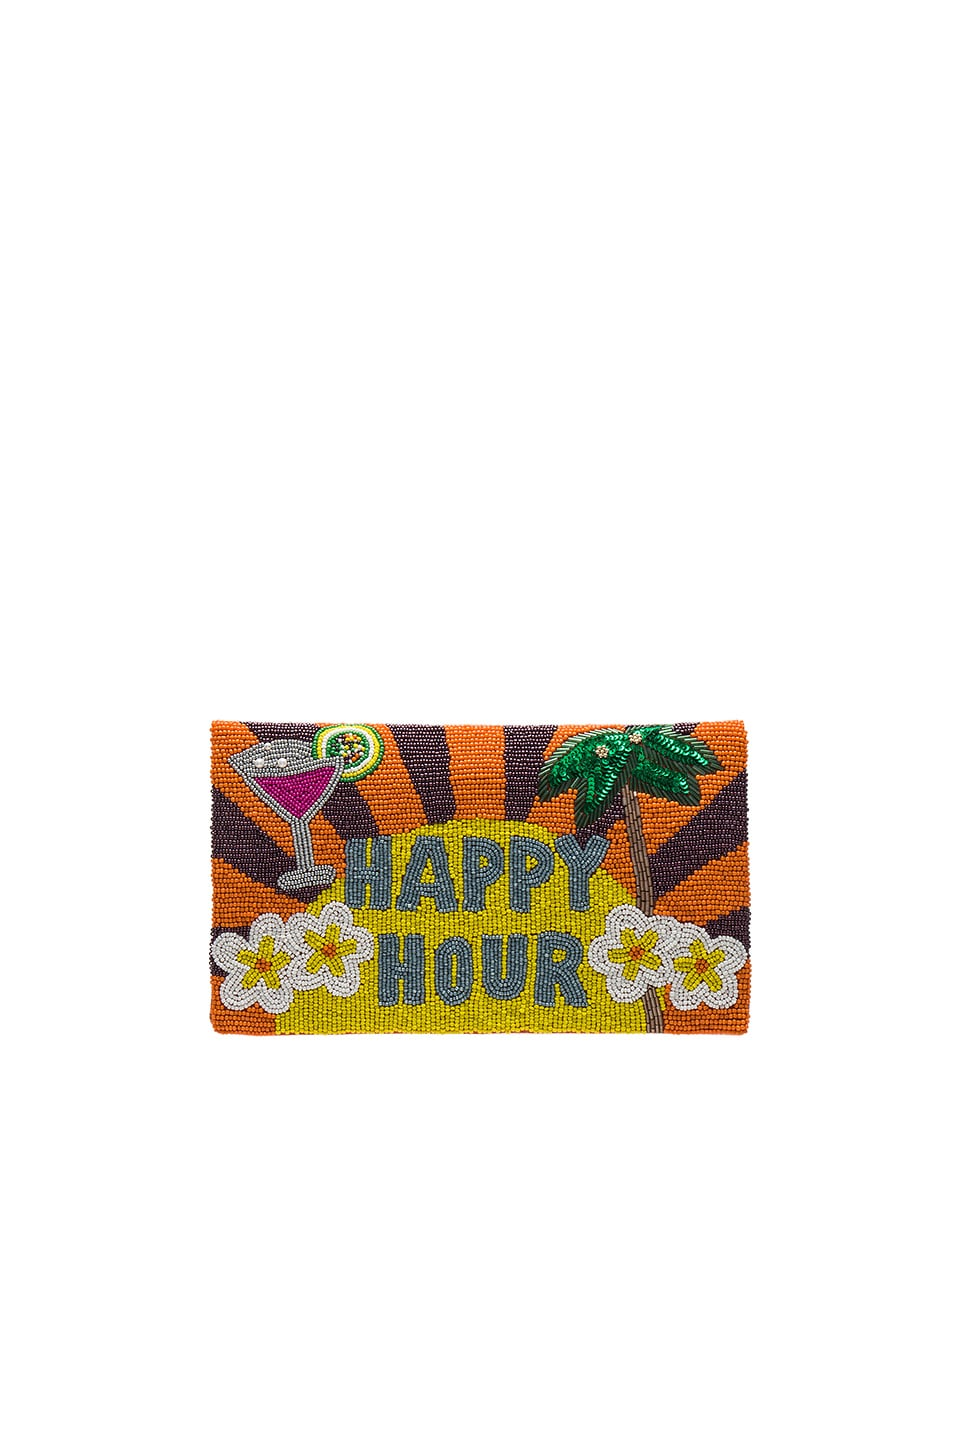 FROM ST XAVIER HAPPY HOUR CLUTCH